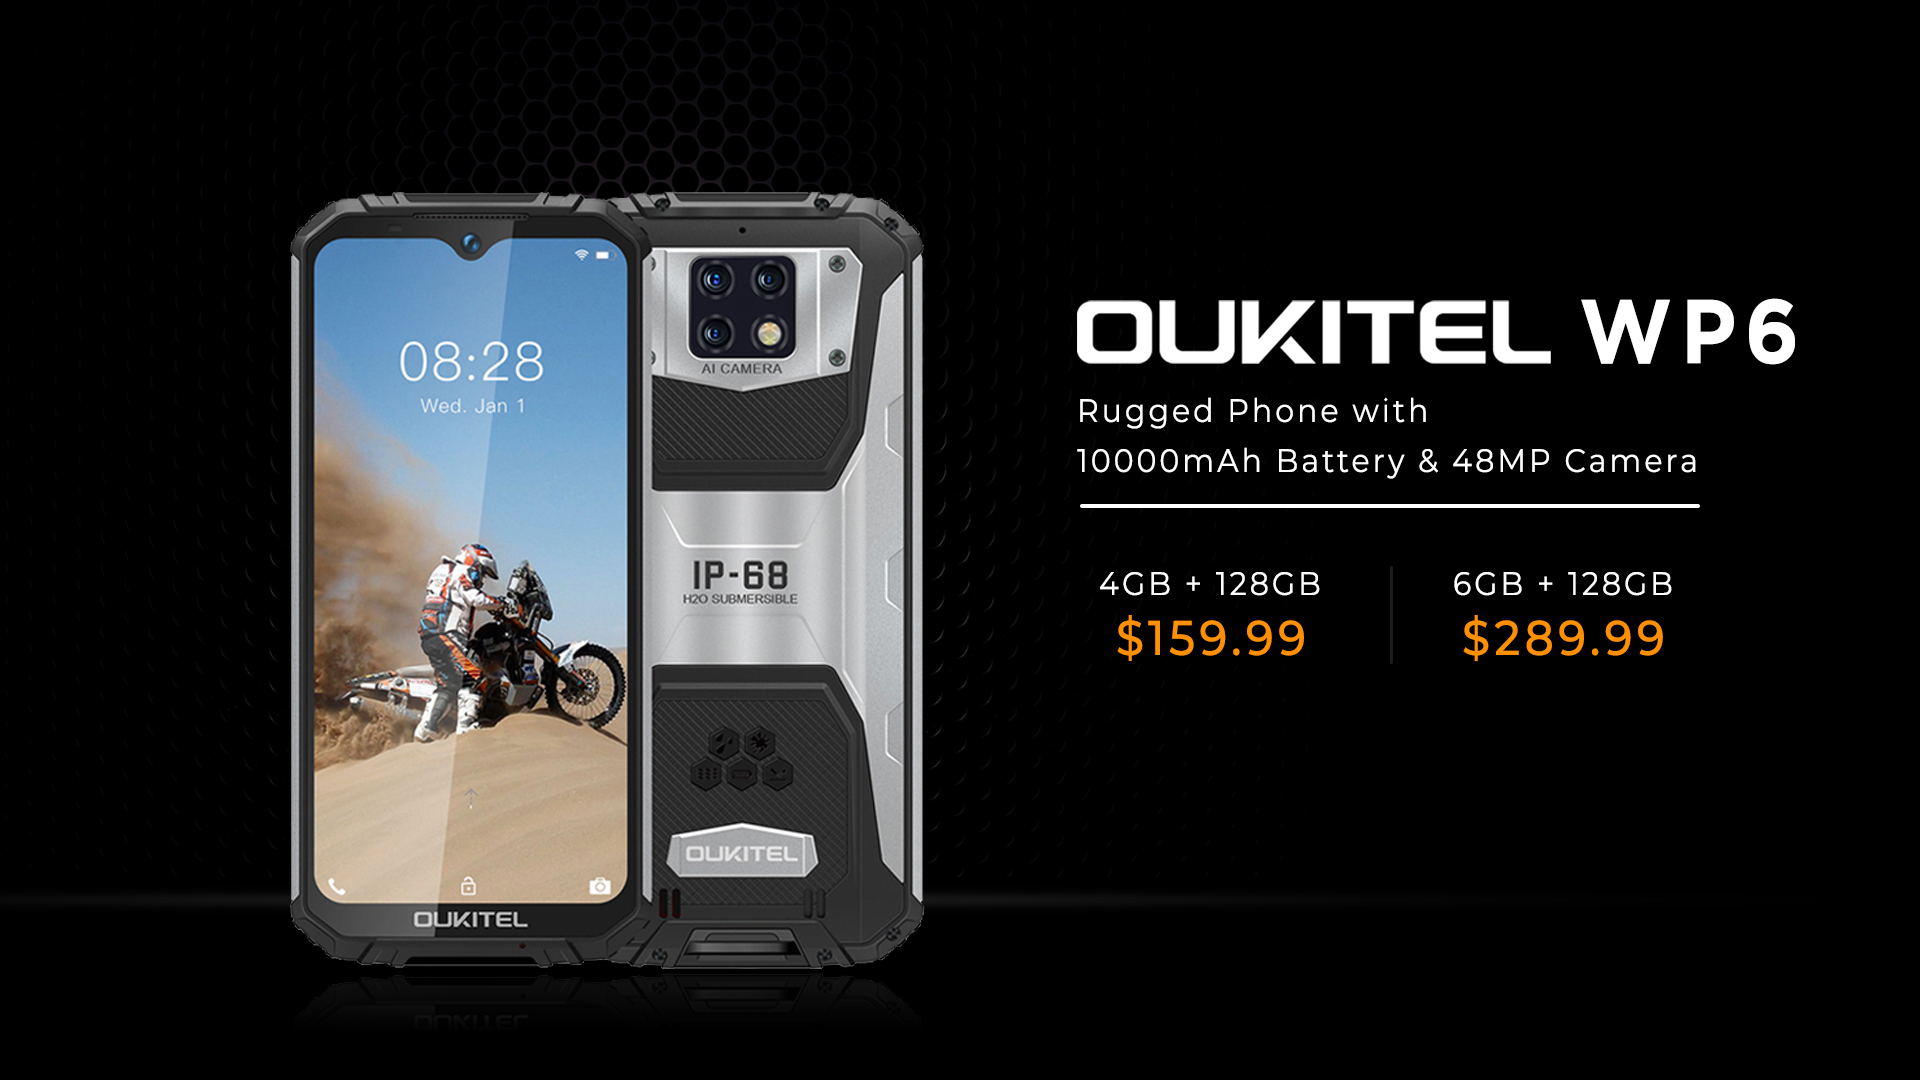 #OUKITEL #WP6 first rugged phone with 10000mAh battery and 48MP triple camera, now available in 4GB RAM variant.🤩 Don't miss this deal at $159.99 only🔥